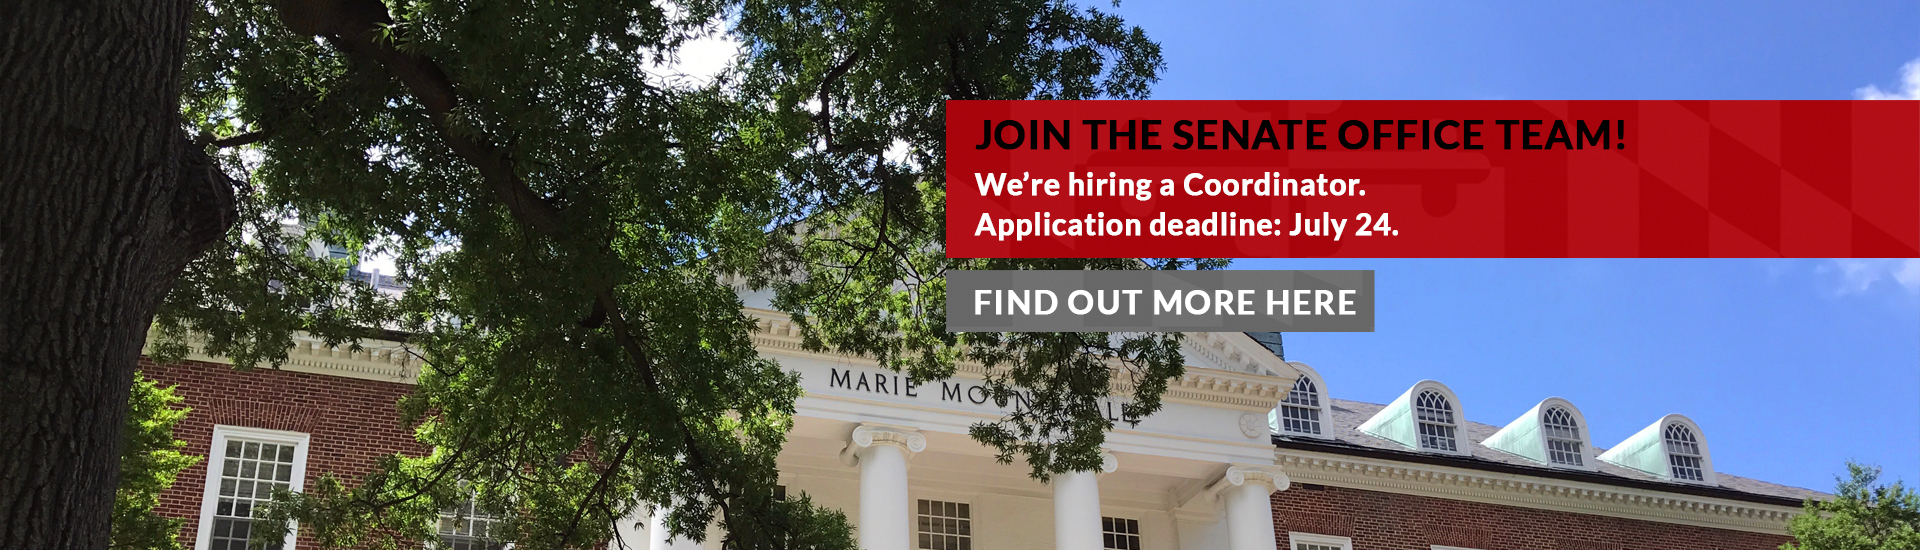 apply for coordinator position by july 26